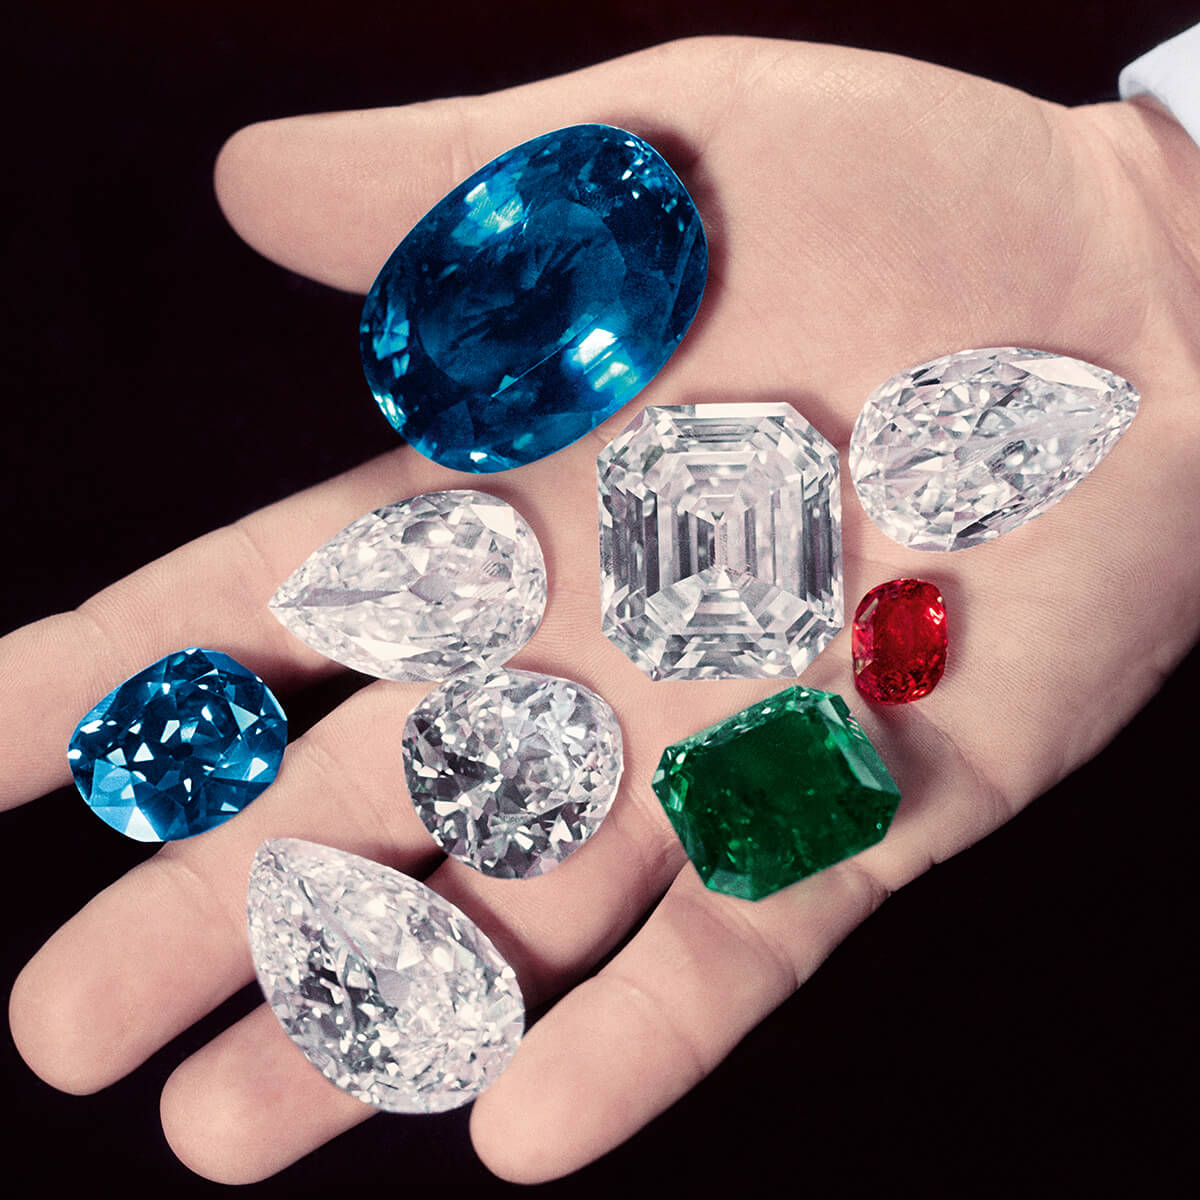 Mr. Winston holds the world's rarest gemstones in the palm of his hand